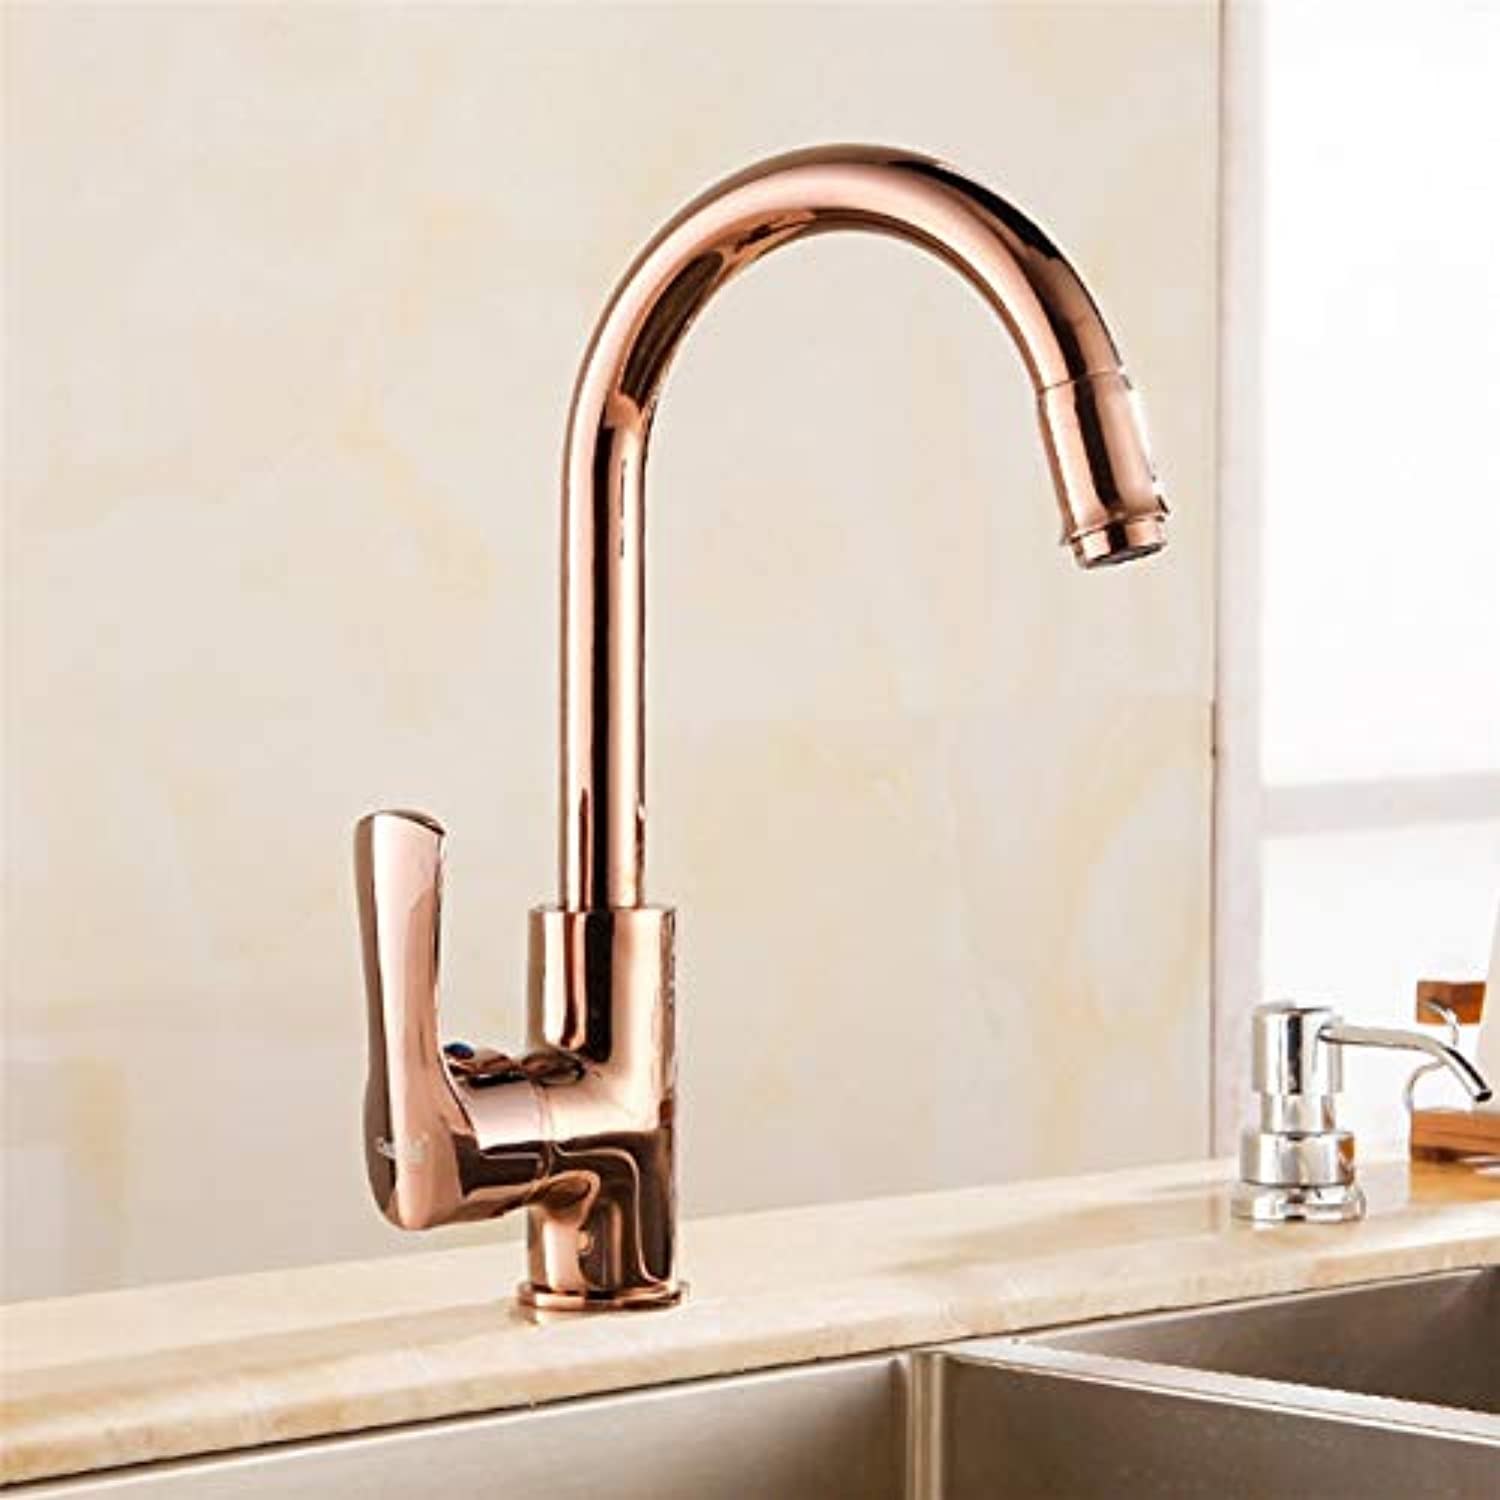 Decorry Kitchen Faucets pink gold golden Chrome Brass Swivel Kitchen Tap Faucets Hot Cold Wash Basin Mixer Water Tap Torneira Cozinha,pink gold